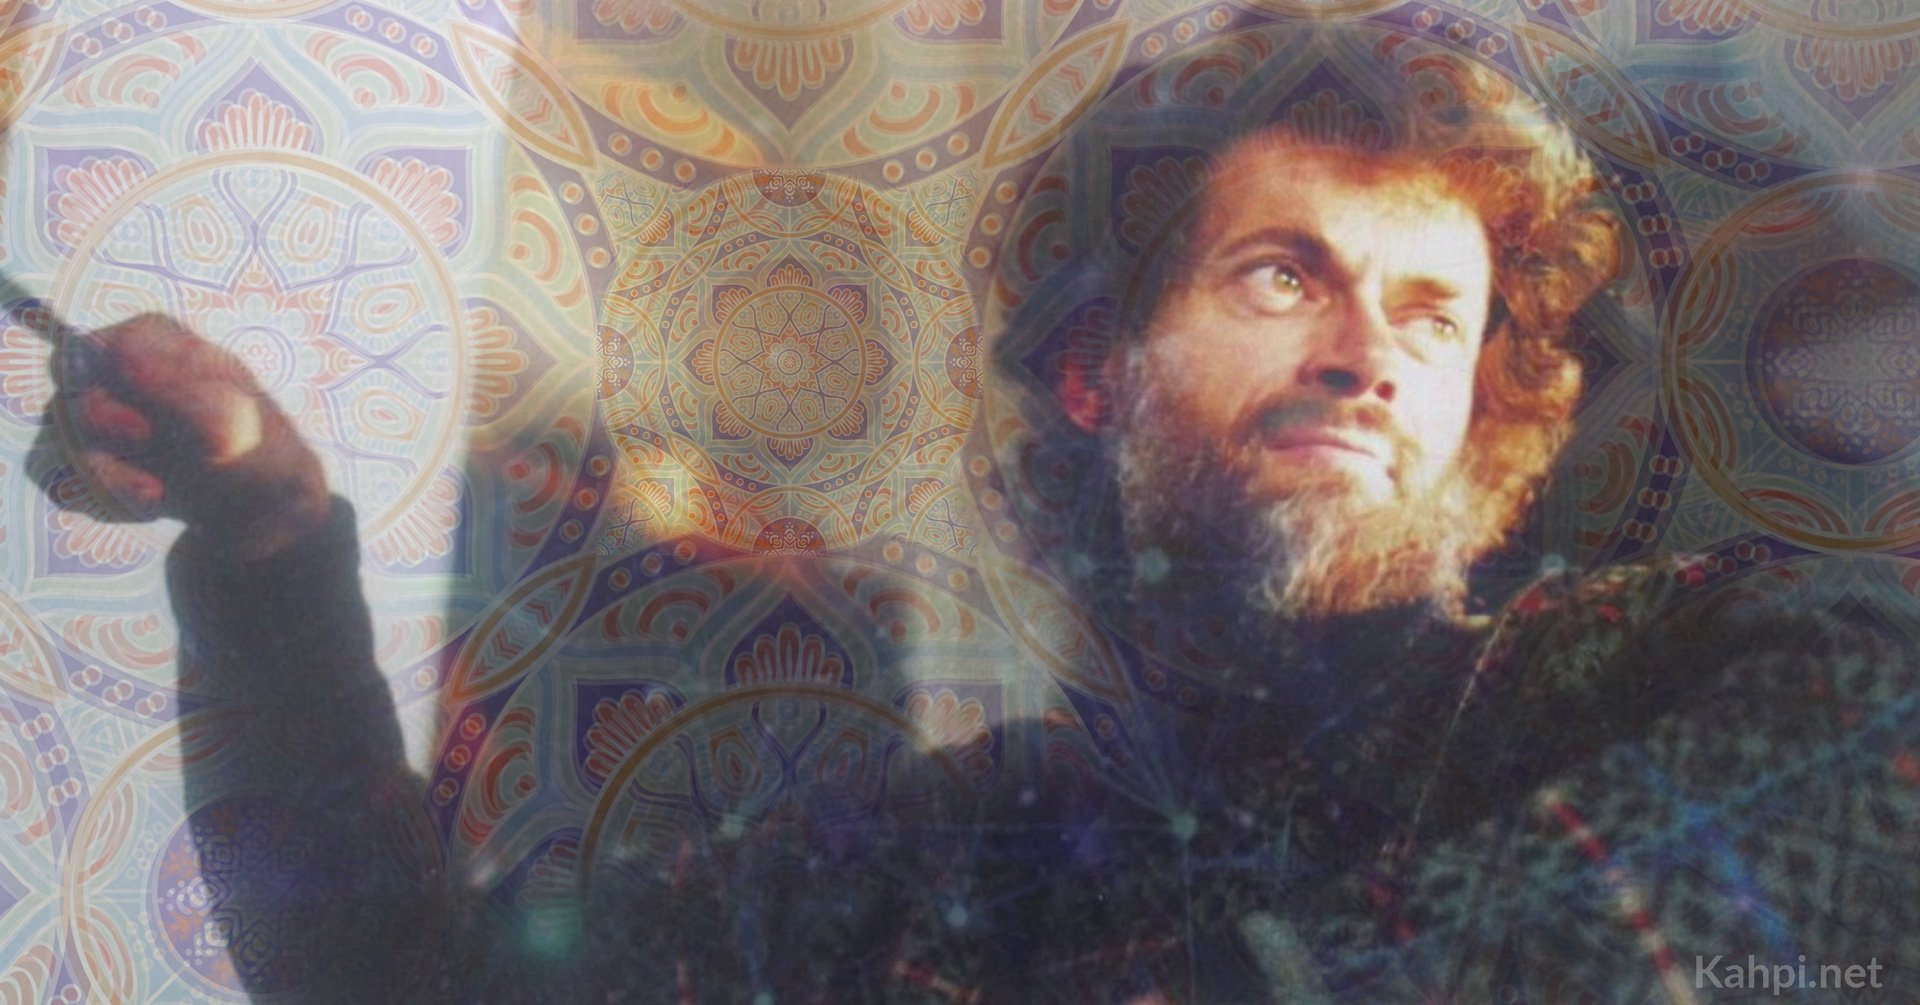 1990s – Terence McKenna Helps Popularize Ayahuasca Across the Globe